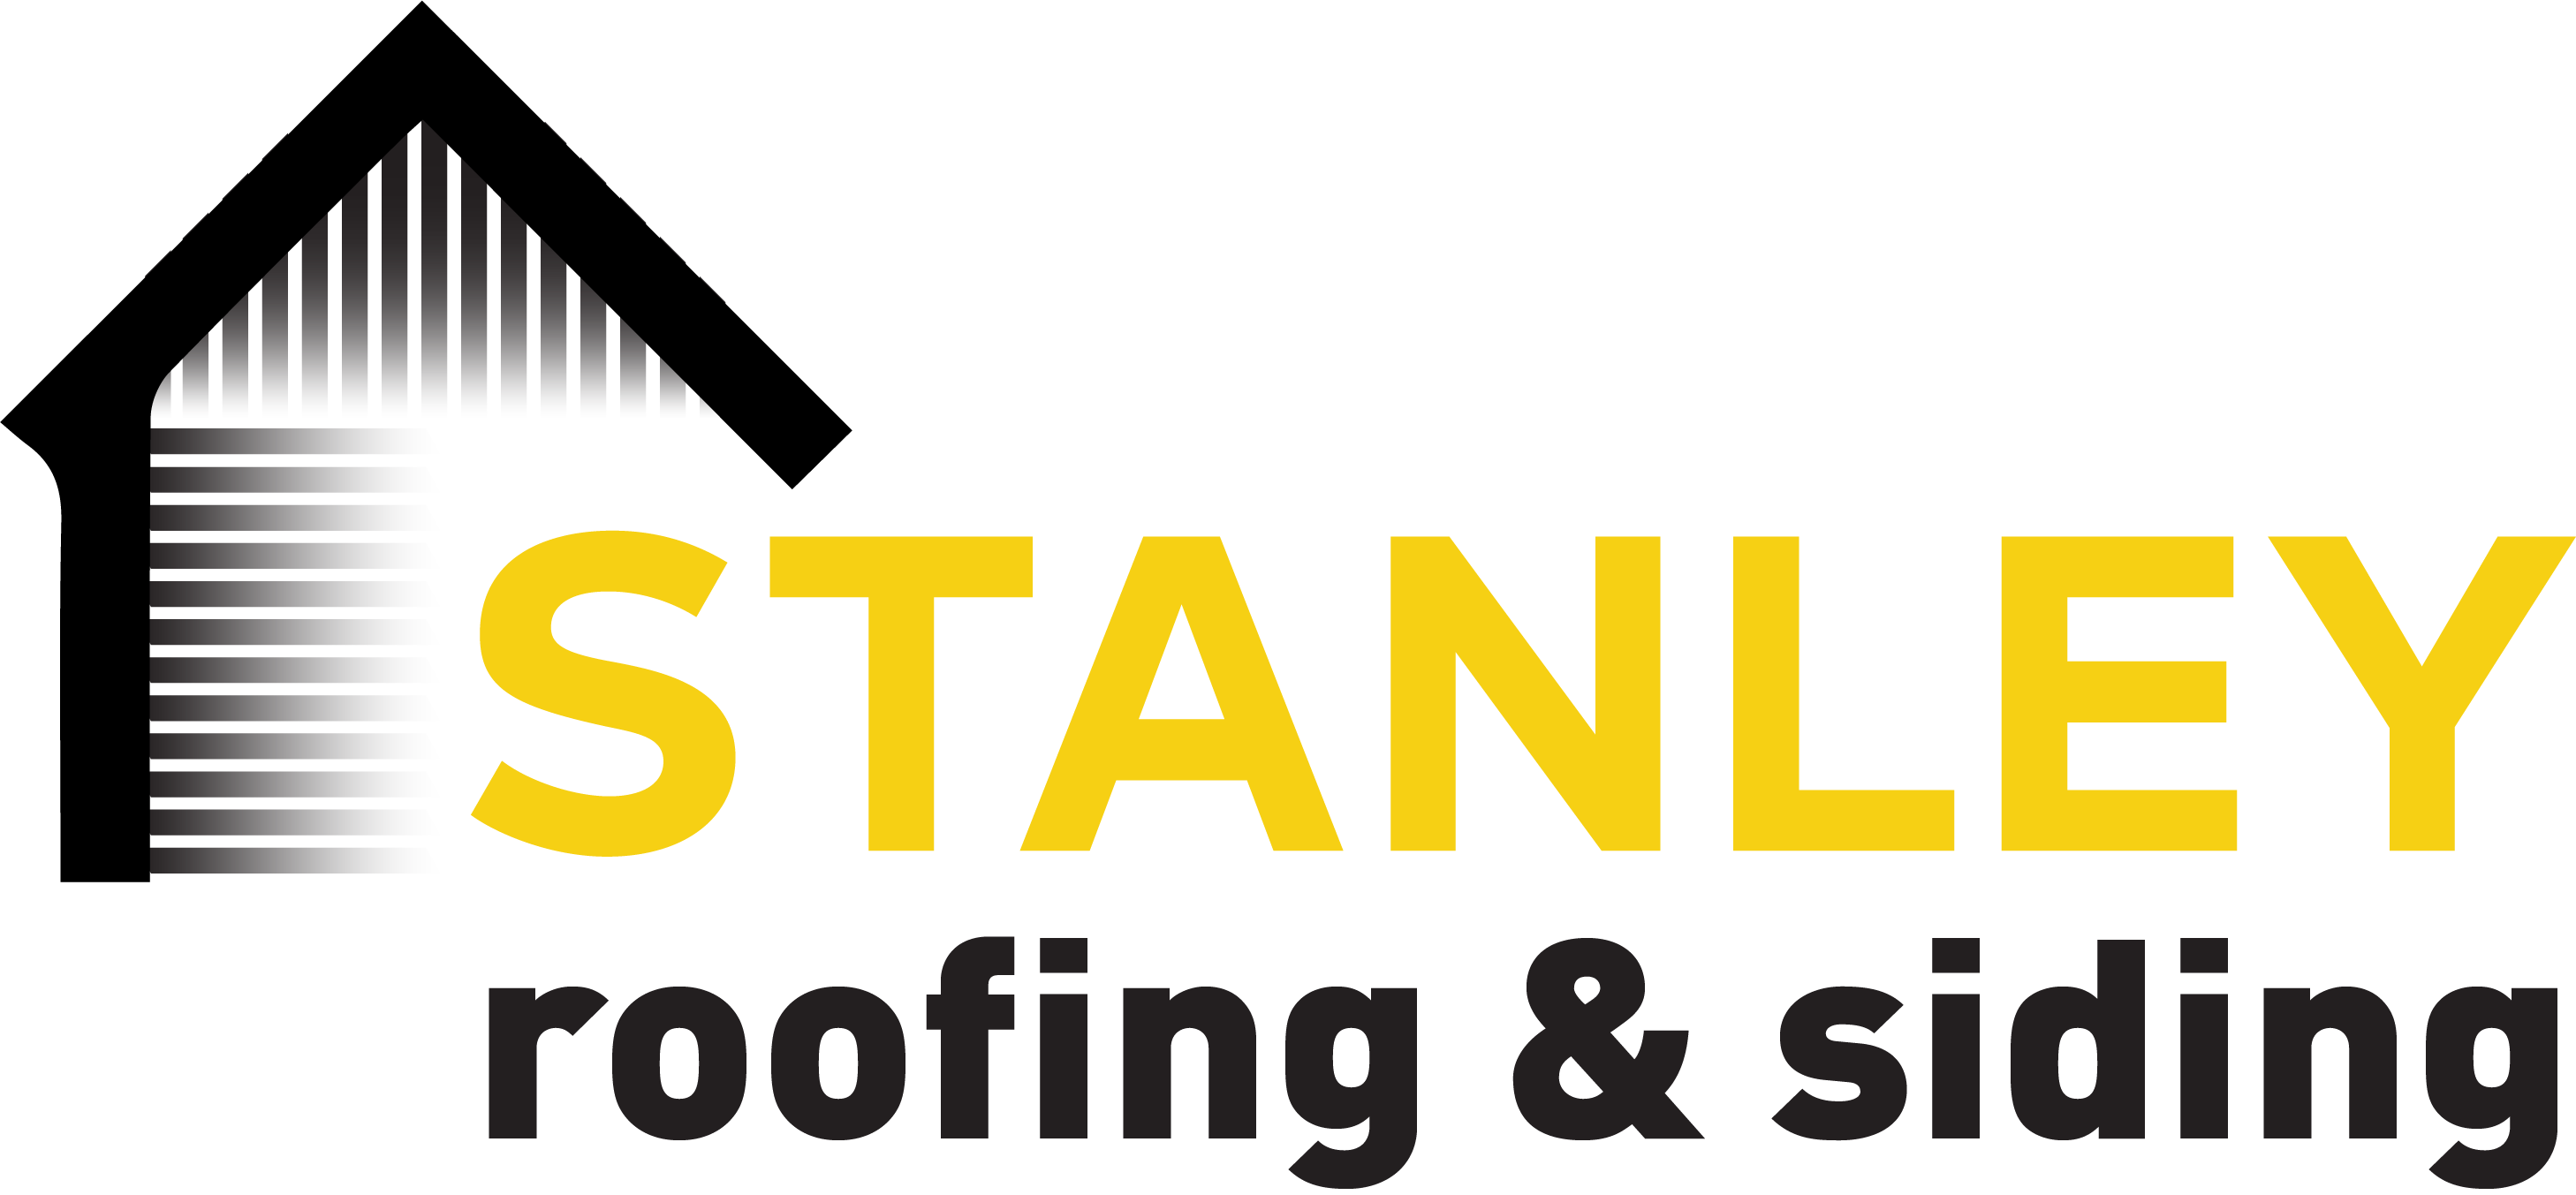 STANLEY Roofing Company Chicago | Roofing Contractors & Roofing Companies in Chicago, IL